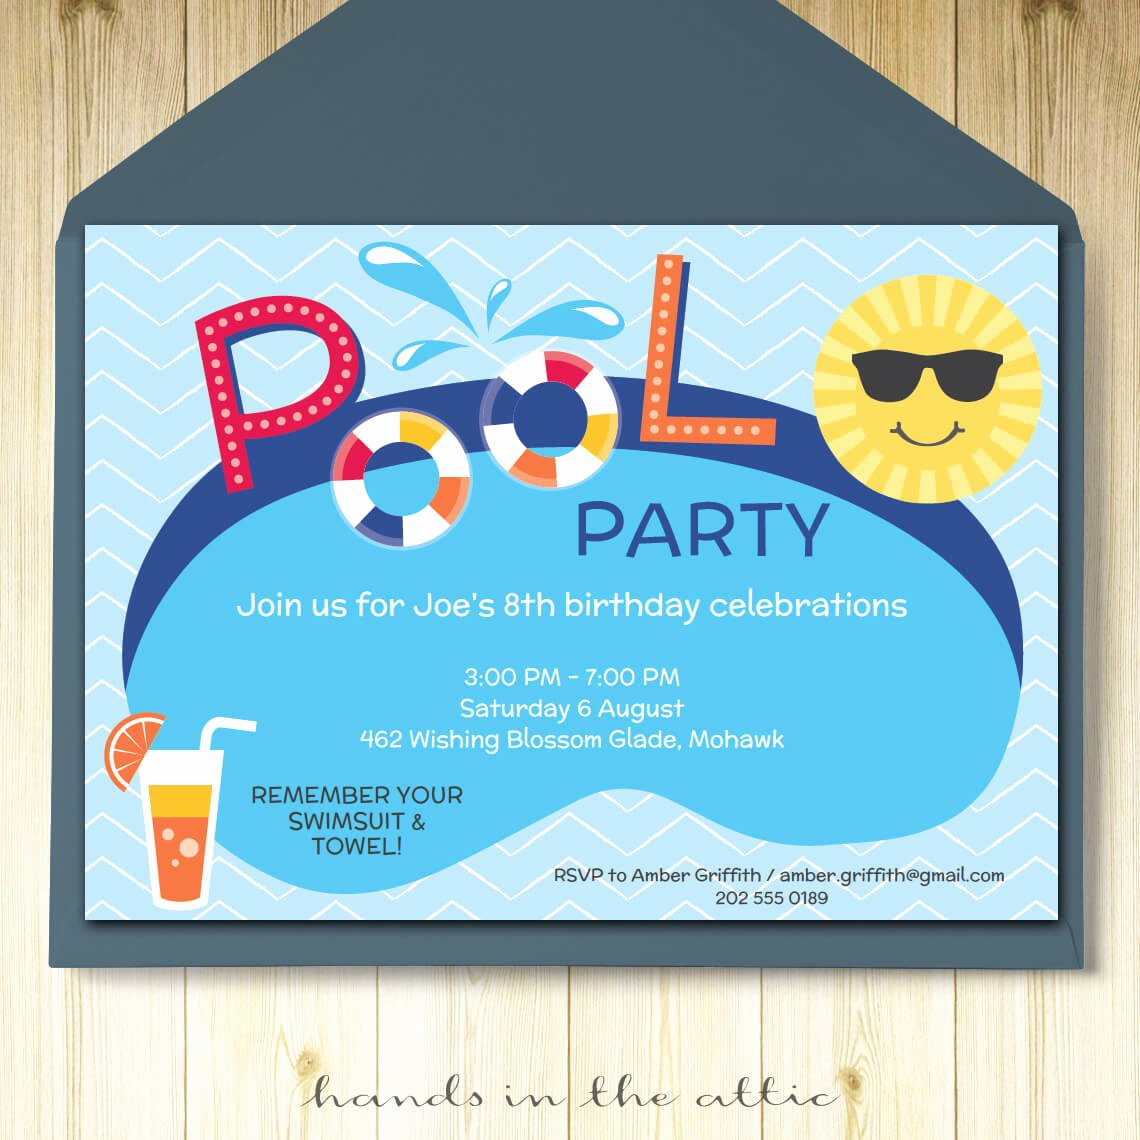 Pool Party Invitation Template Free Best Of Pool Party Invitation Card Editable Template Party Printable